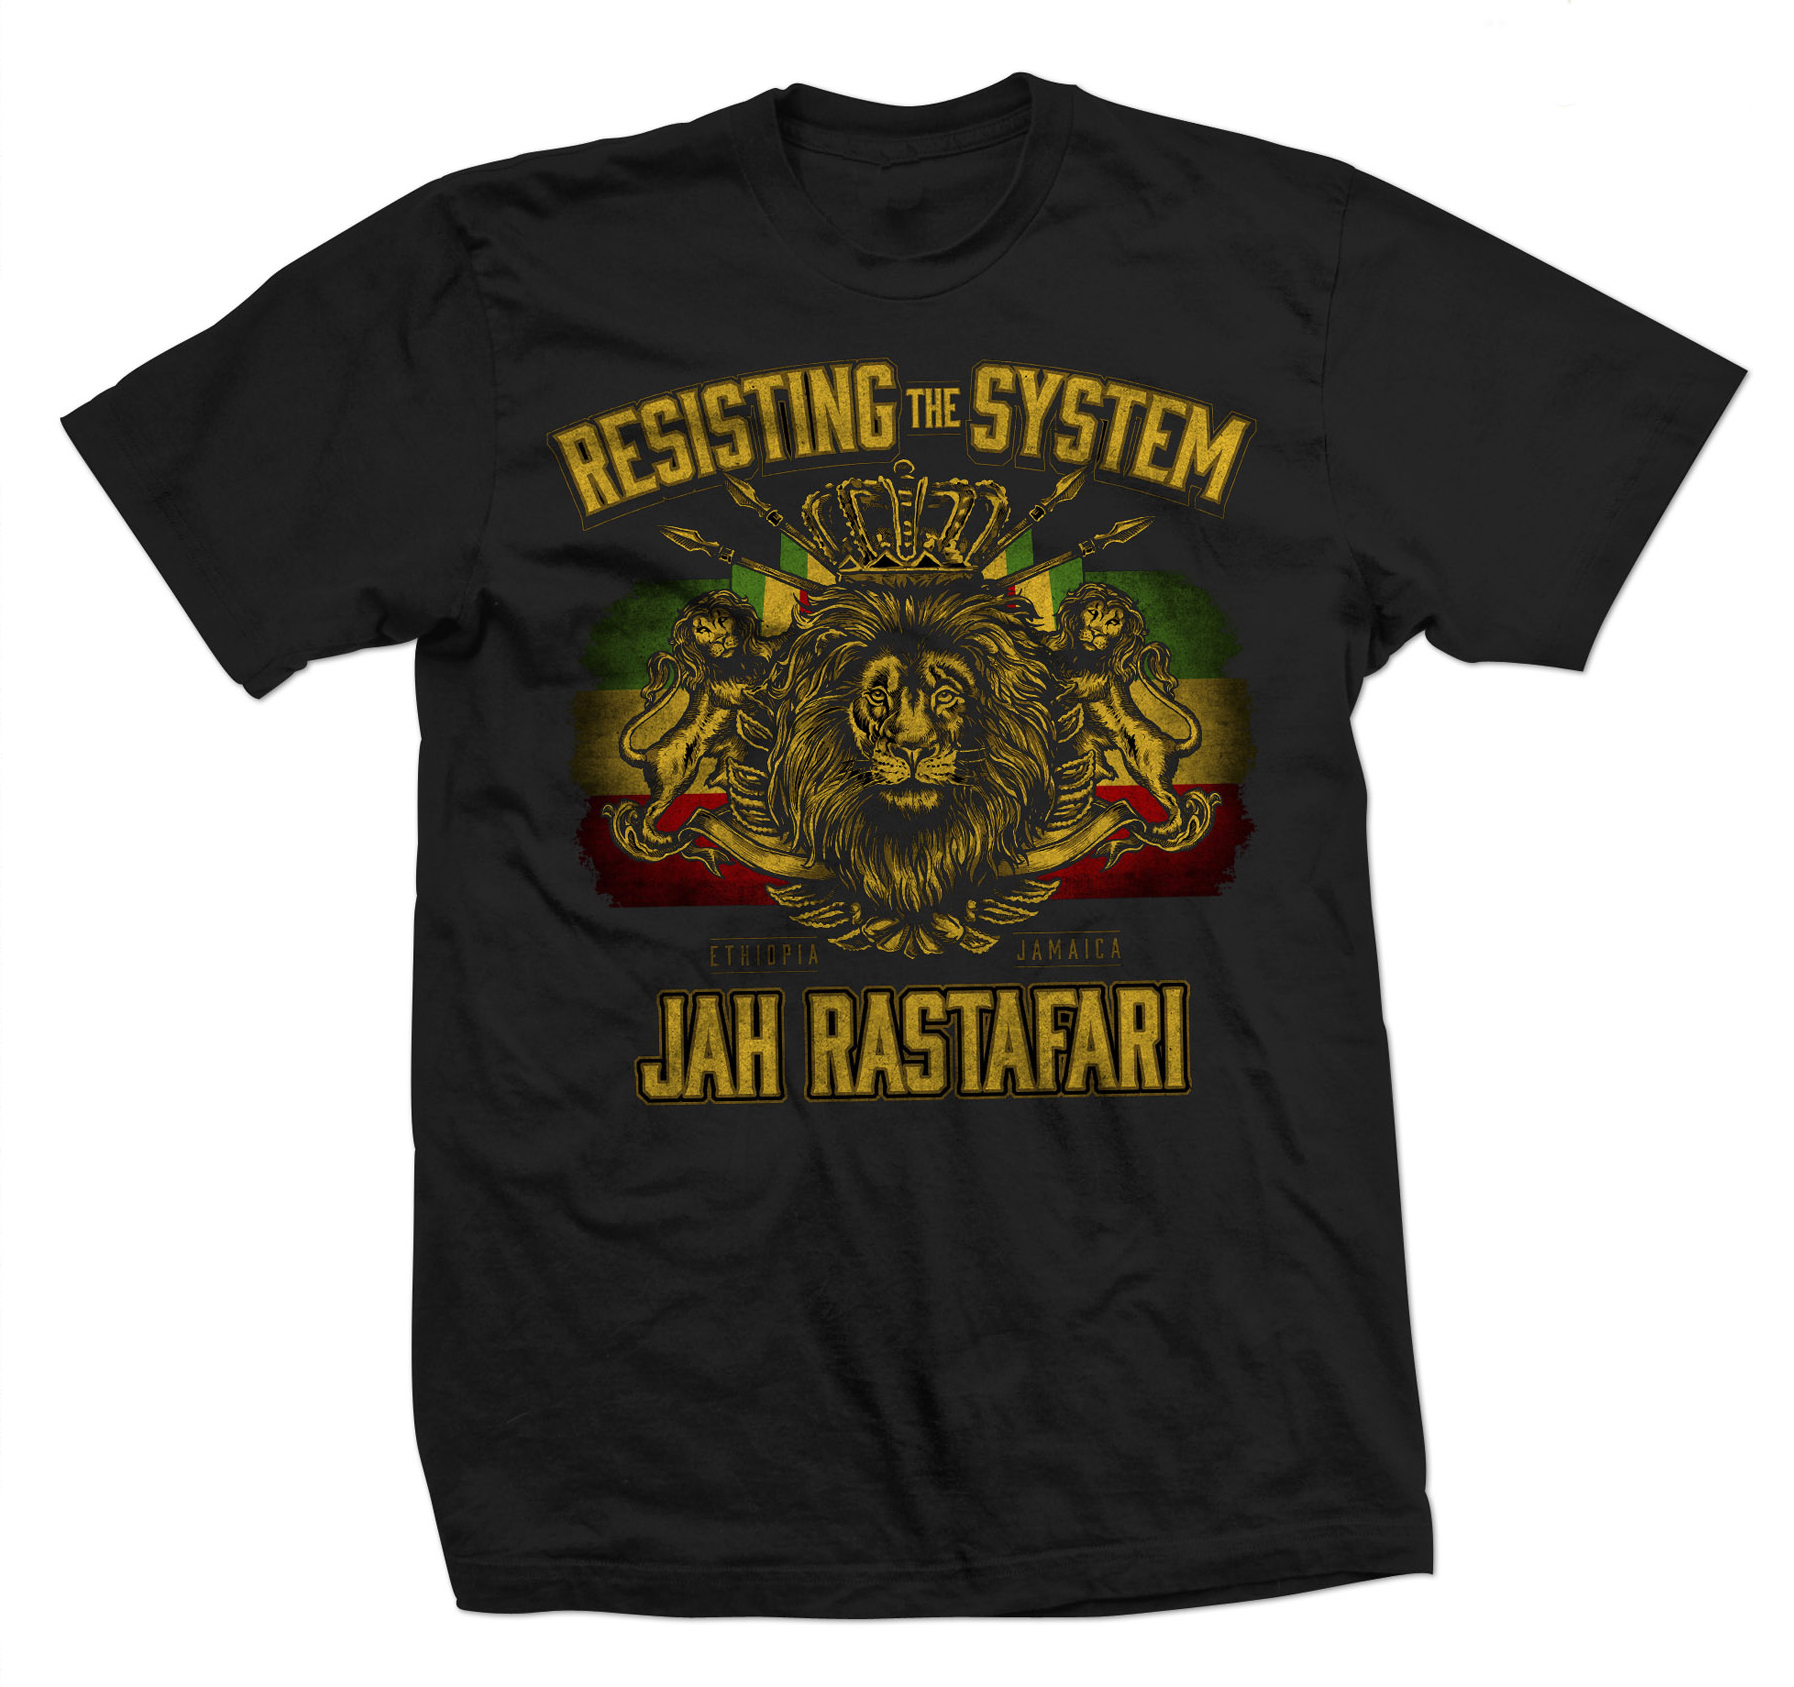 Resisting the system t shirt